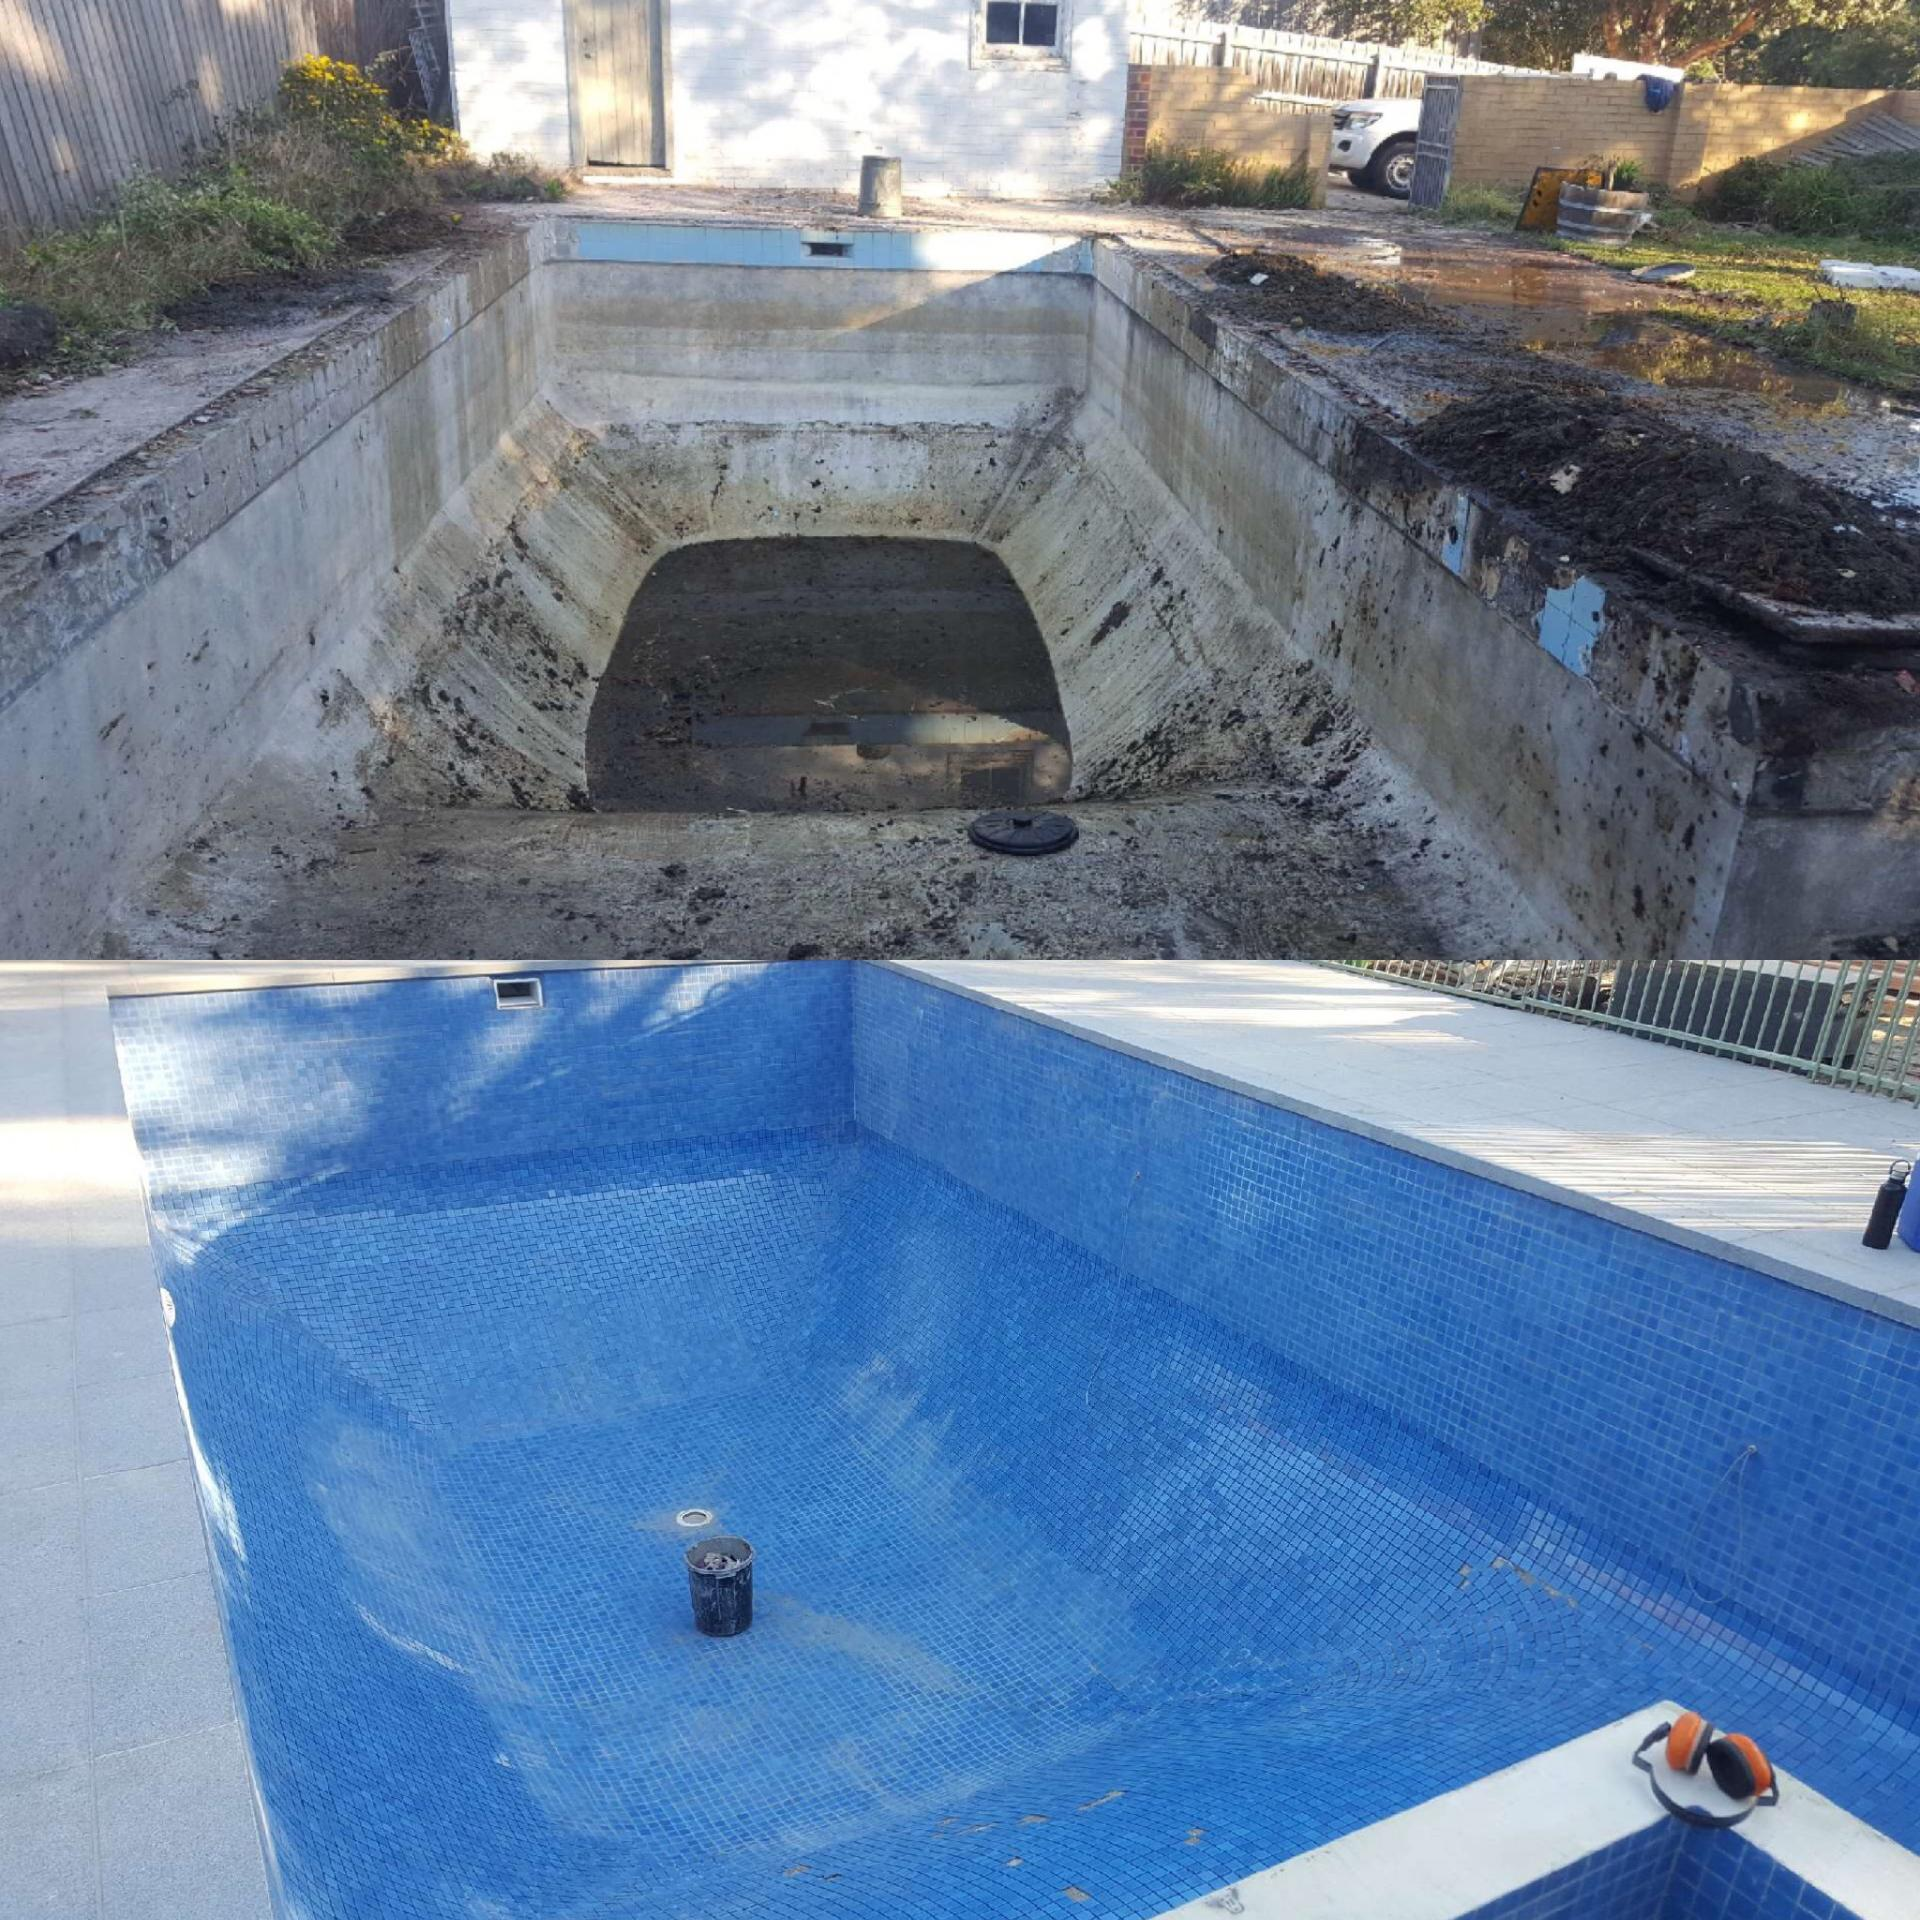 Pool Renovation Before